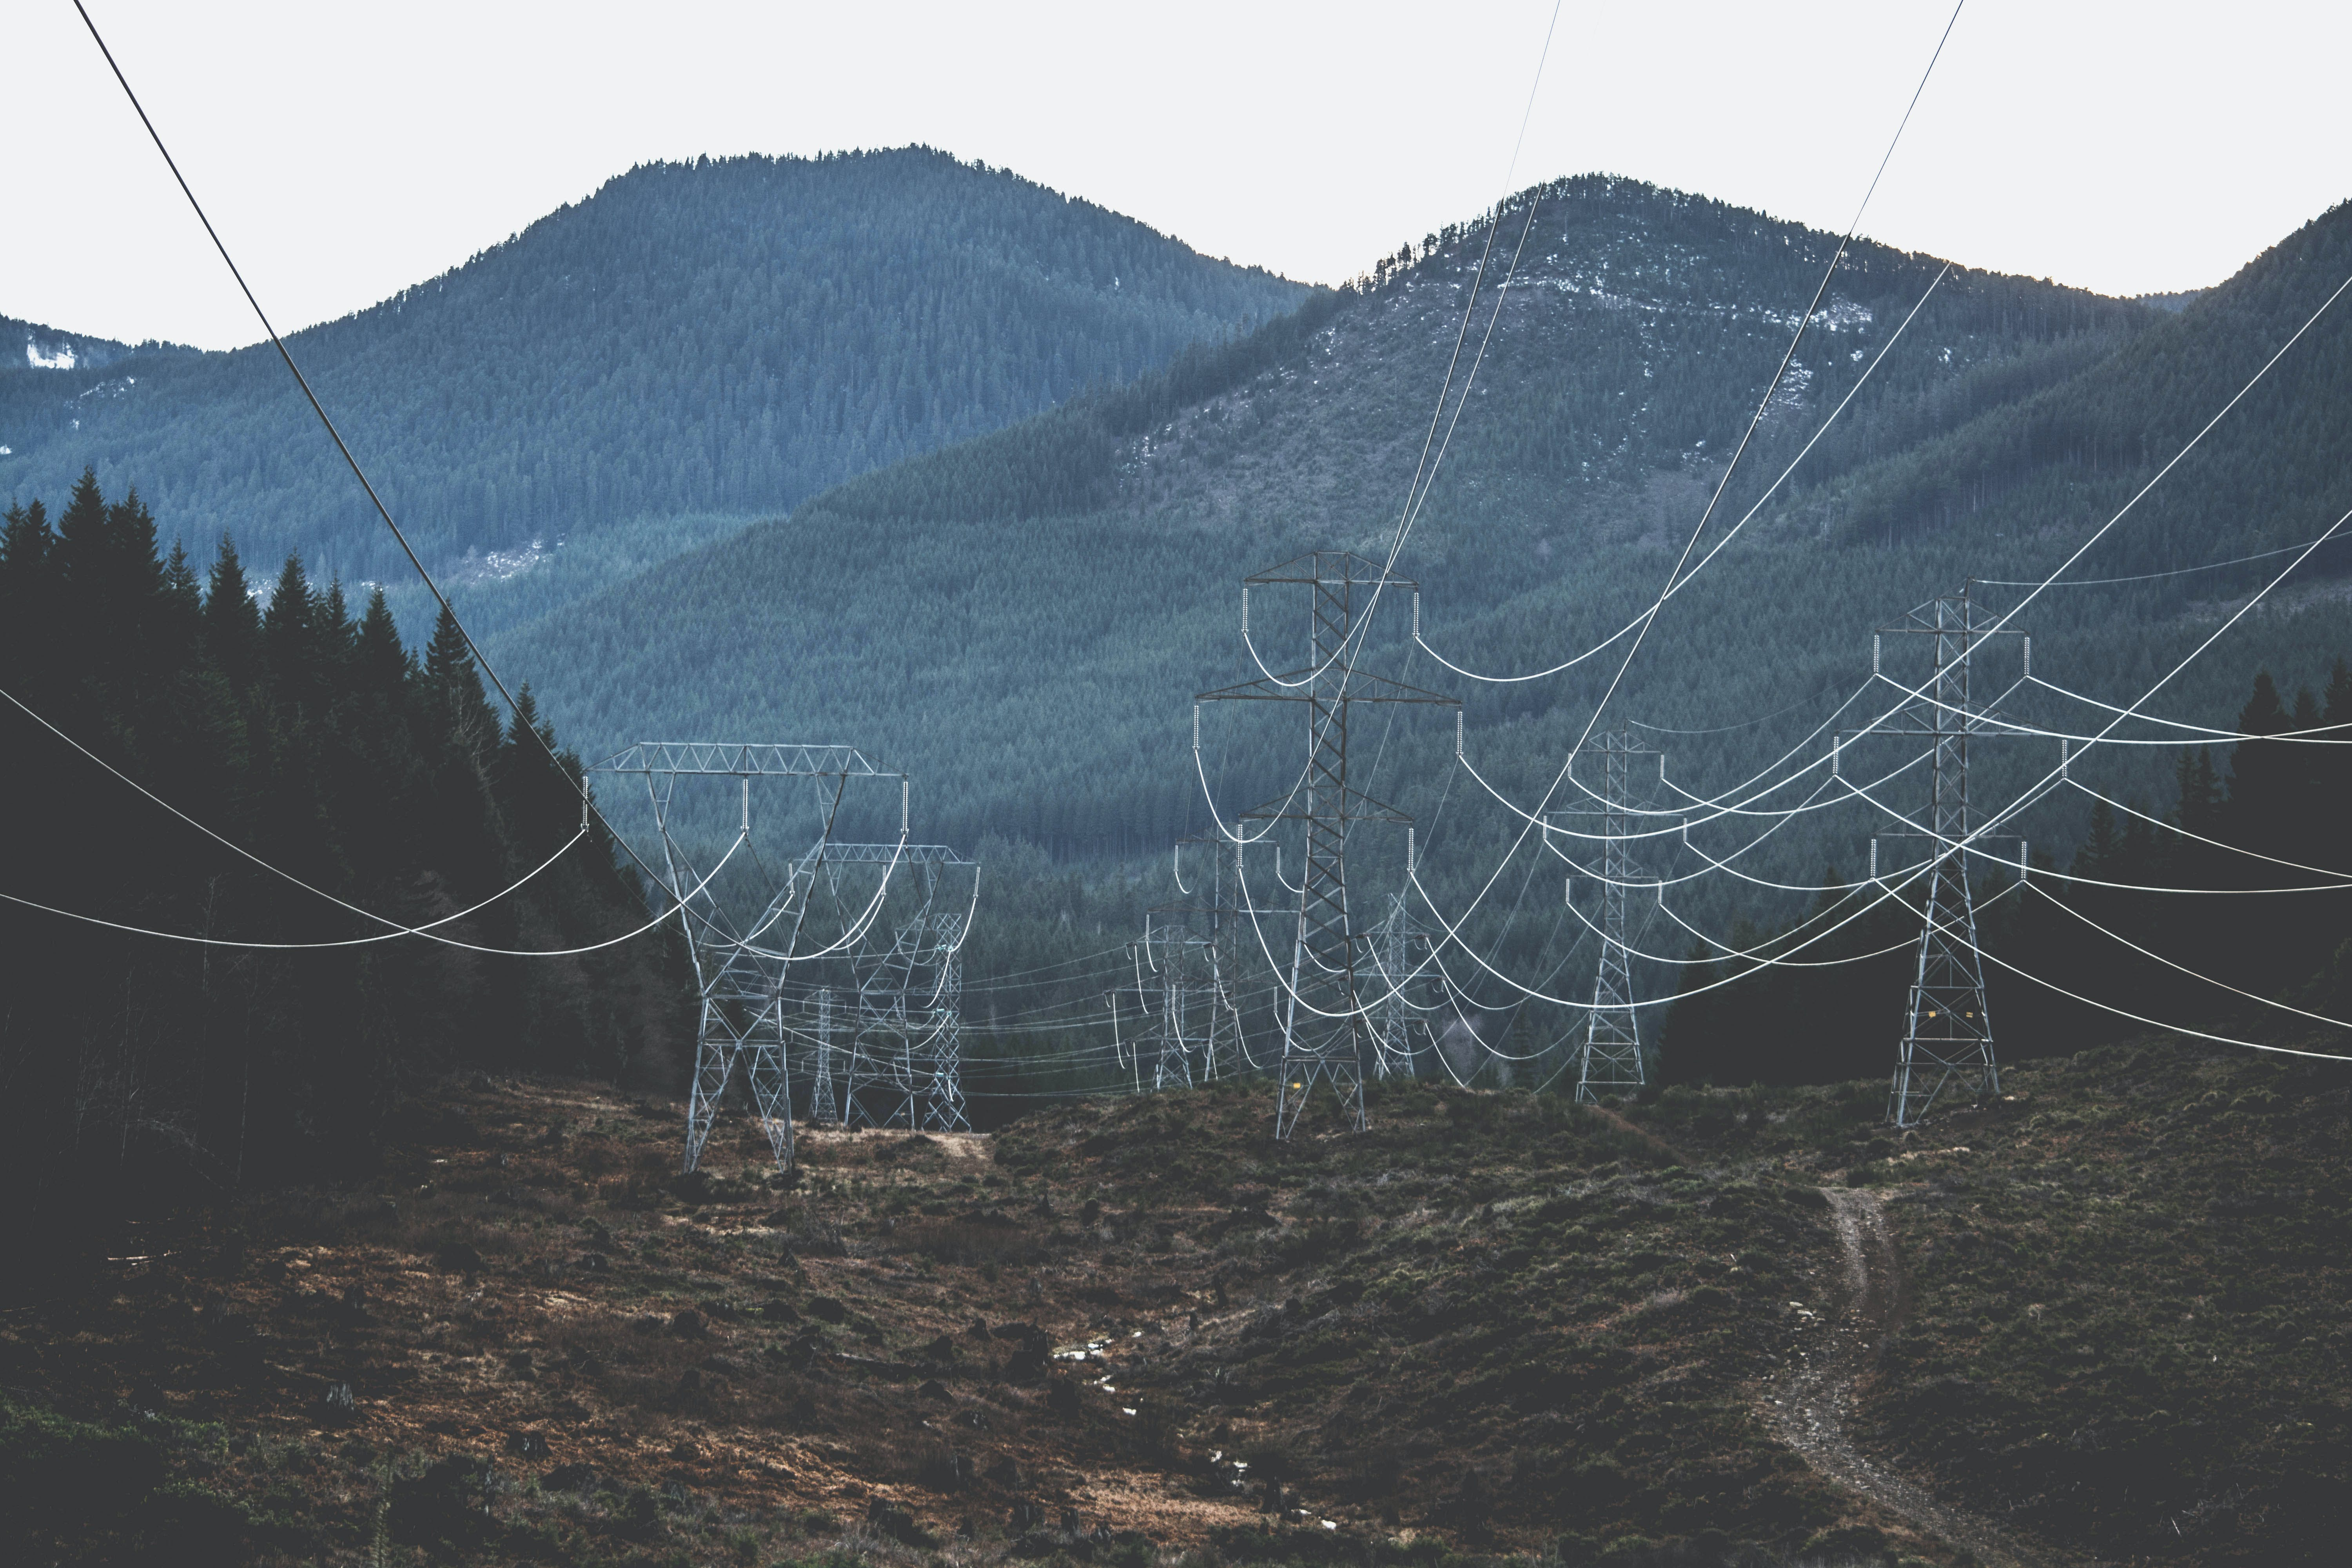 Aerial View Photography of Cable Wires